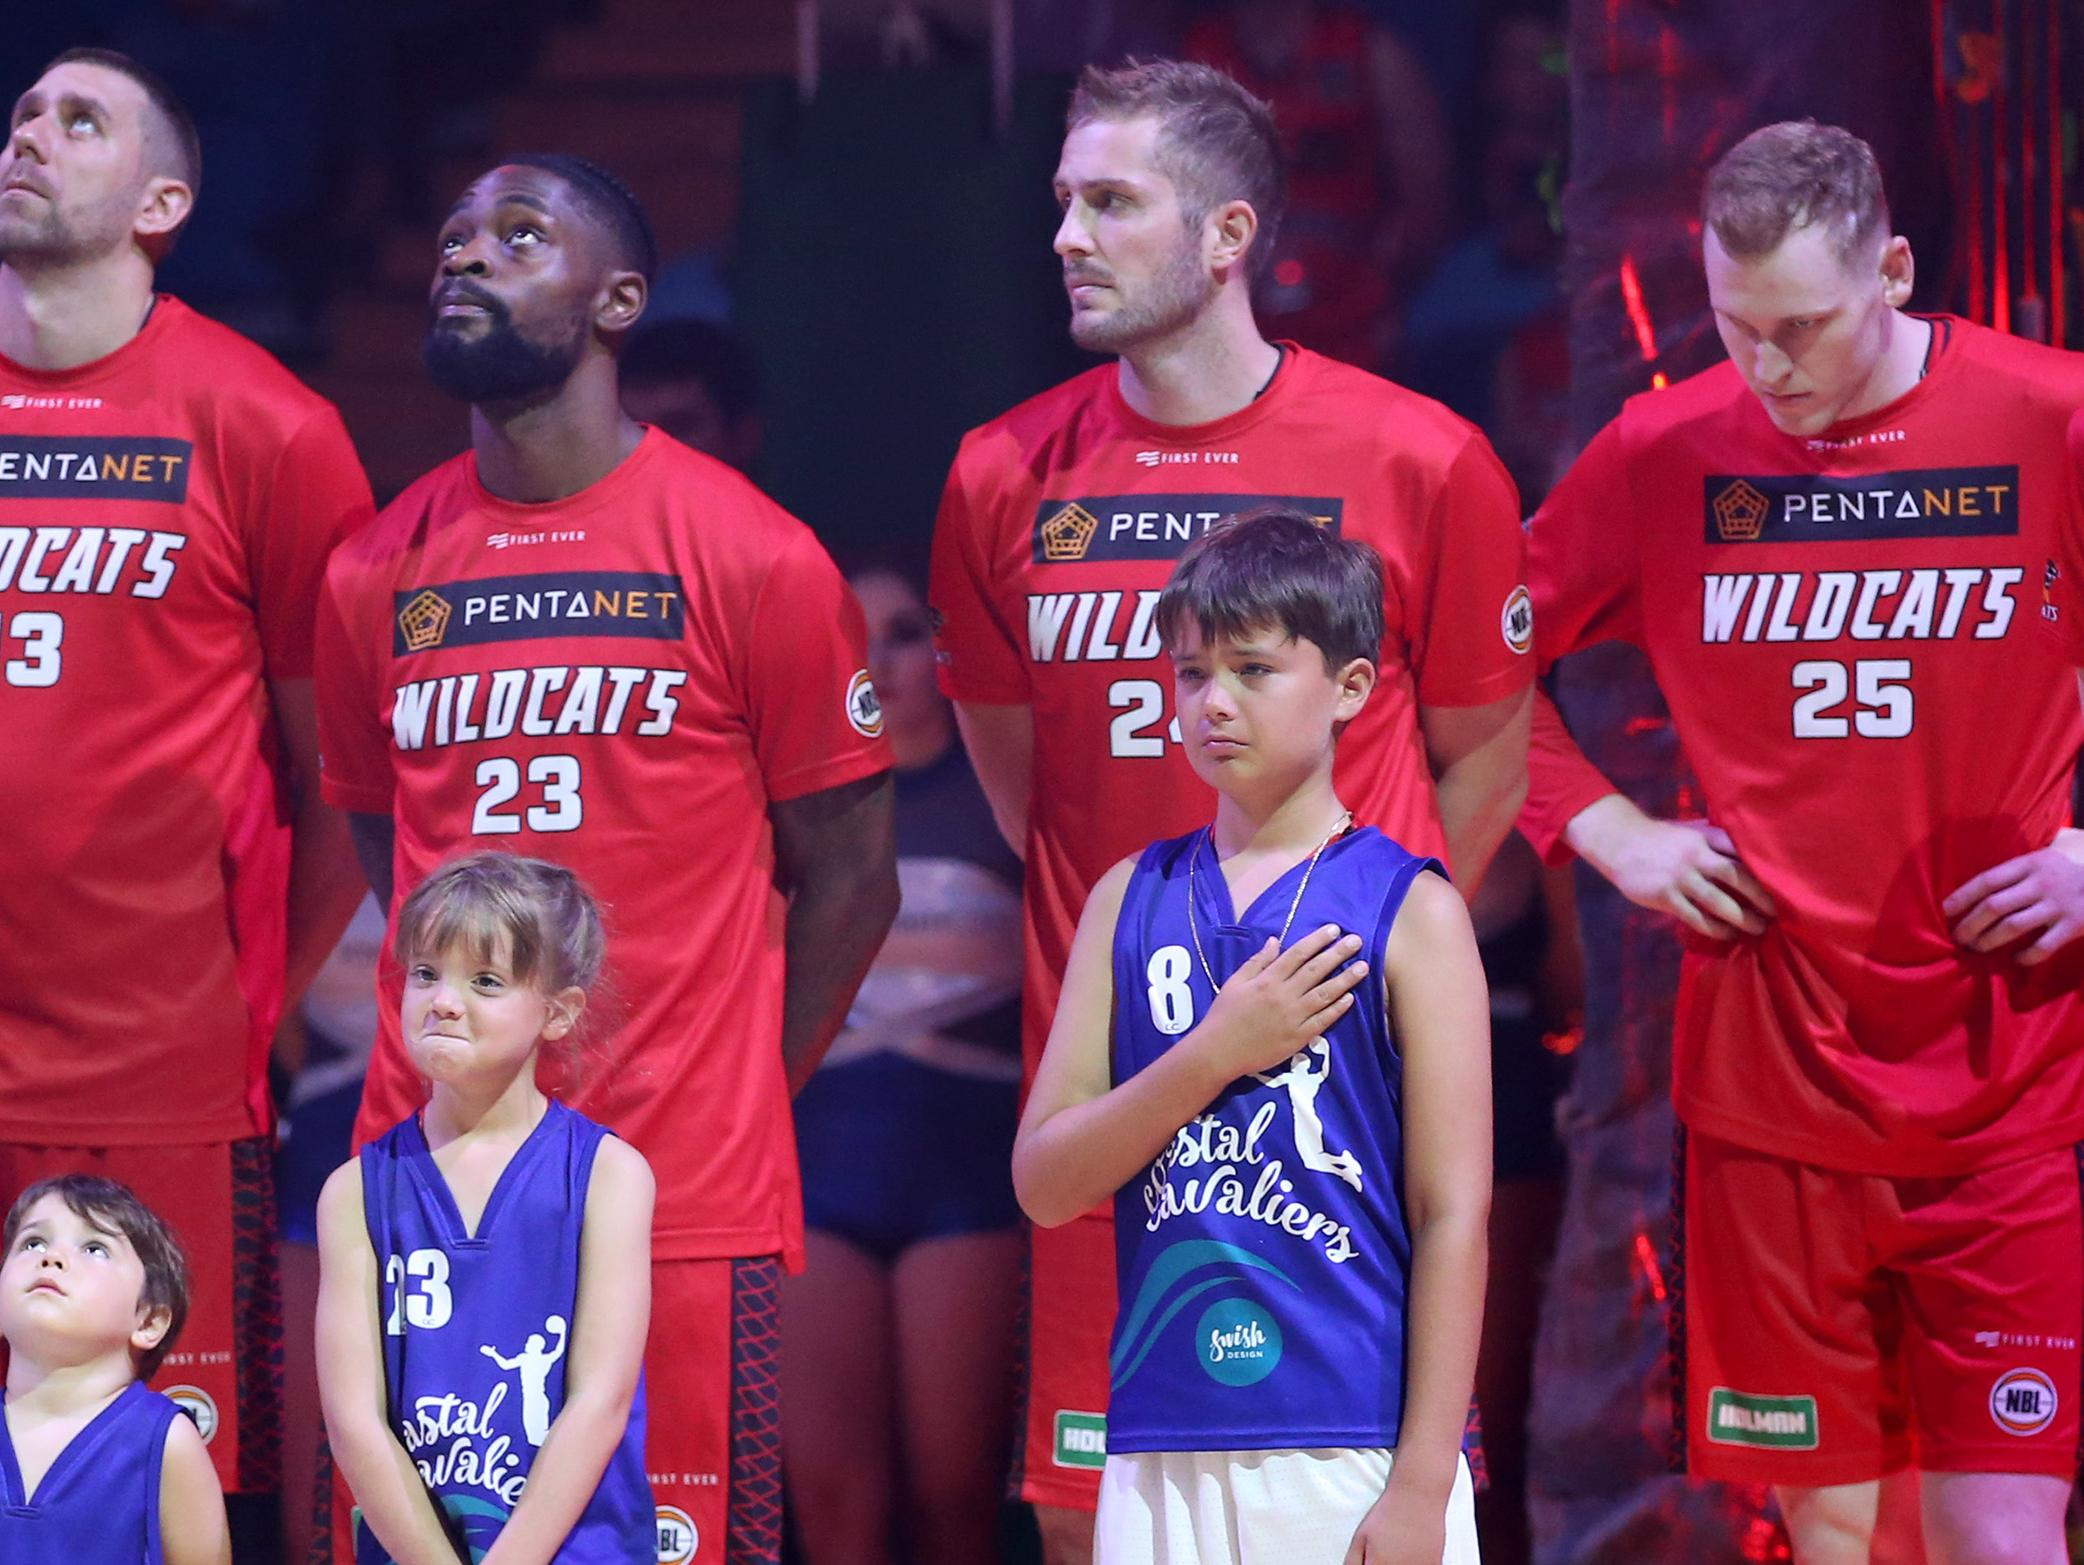 Exeter's children stand alongside the Wildcats during one minute's silence.